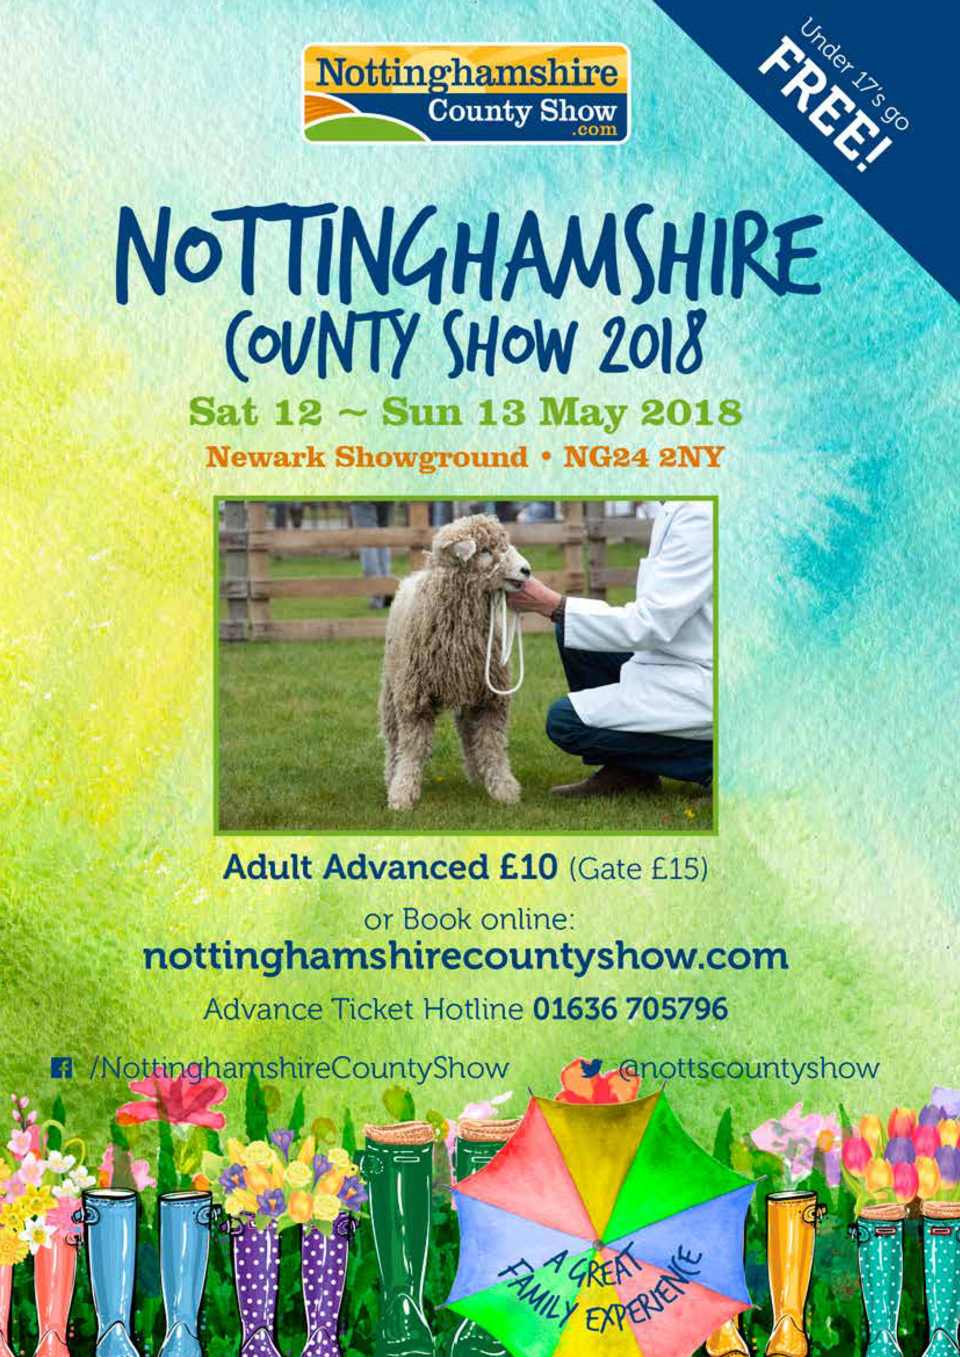 Experience a Unique show  Experience a fabulous family day out this spring at Nottinghamshire County Show. With plenty goi...